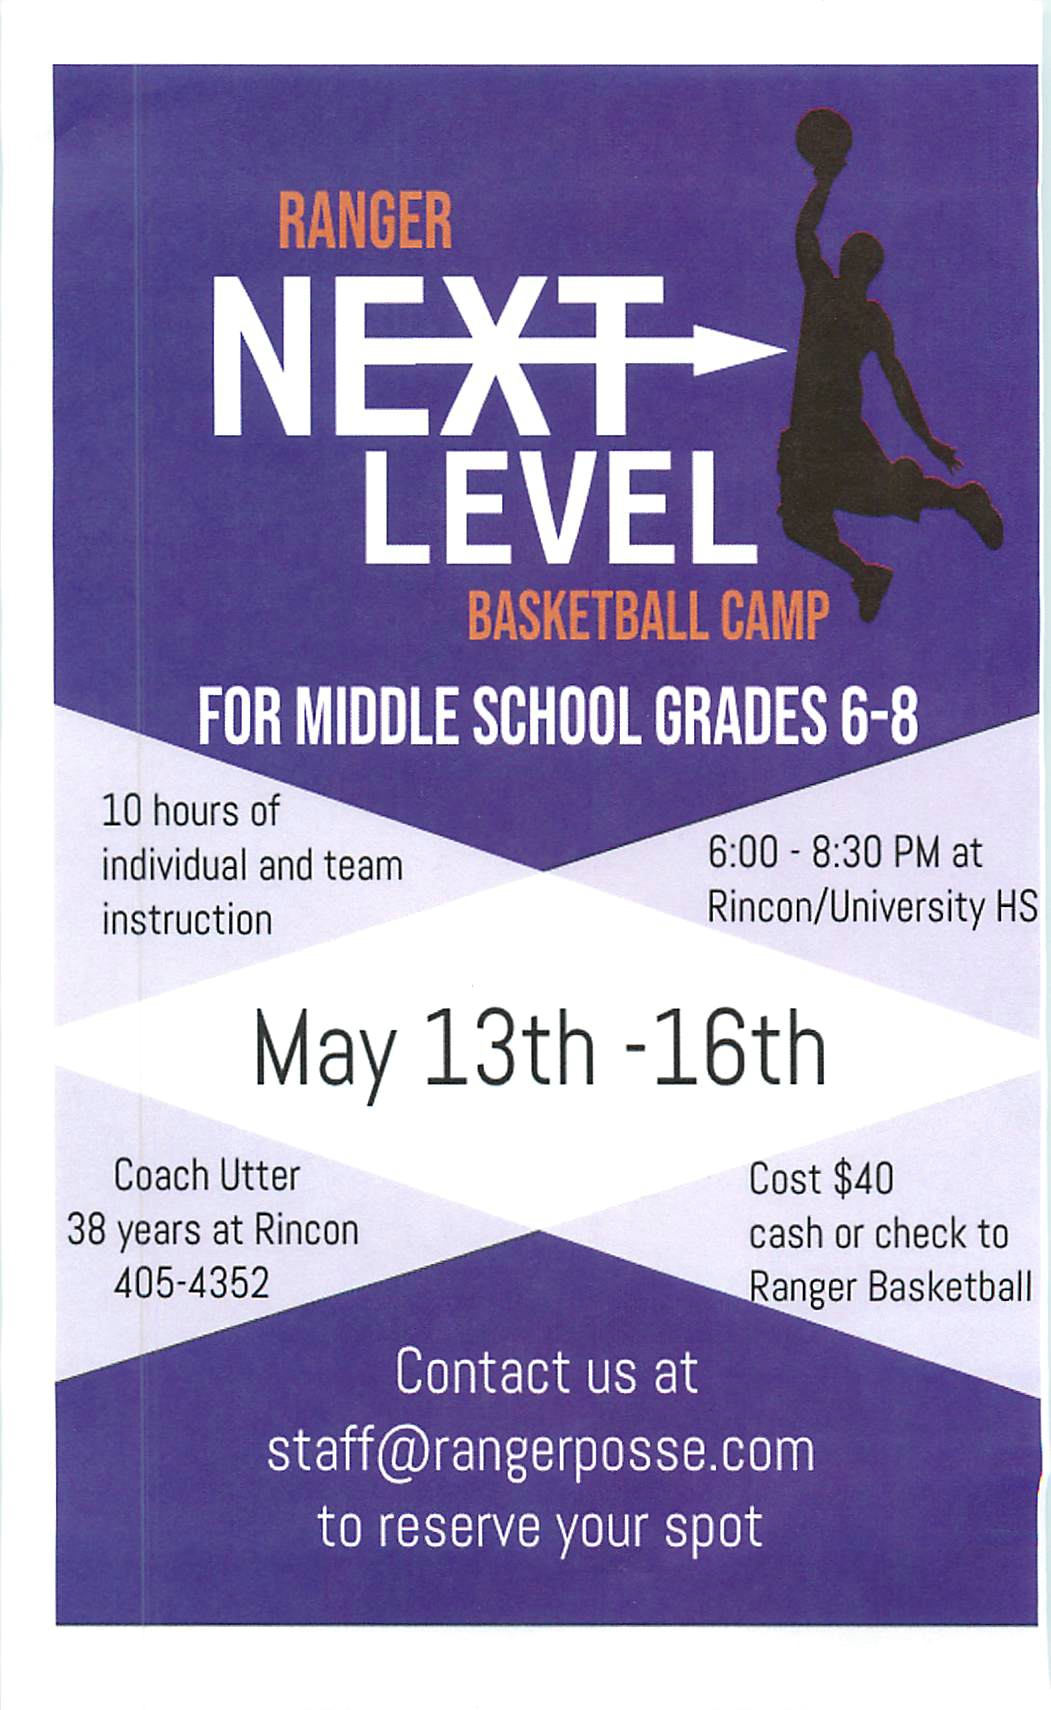 Ranger Next Level Basketball Camp